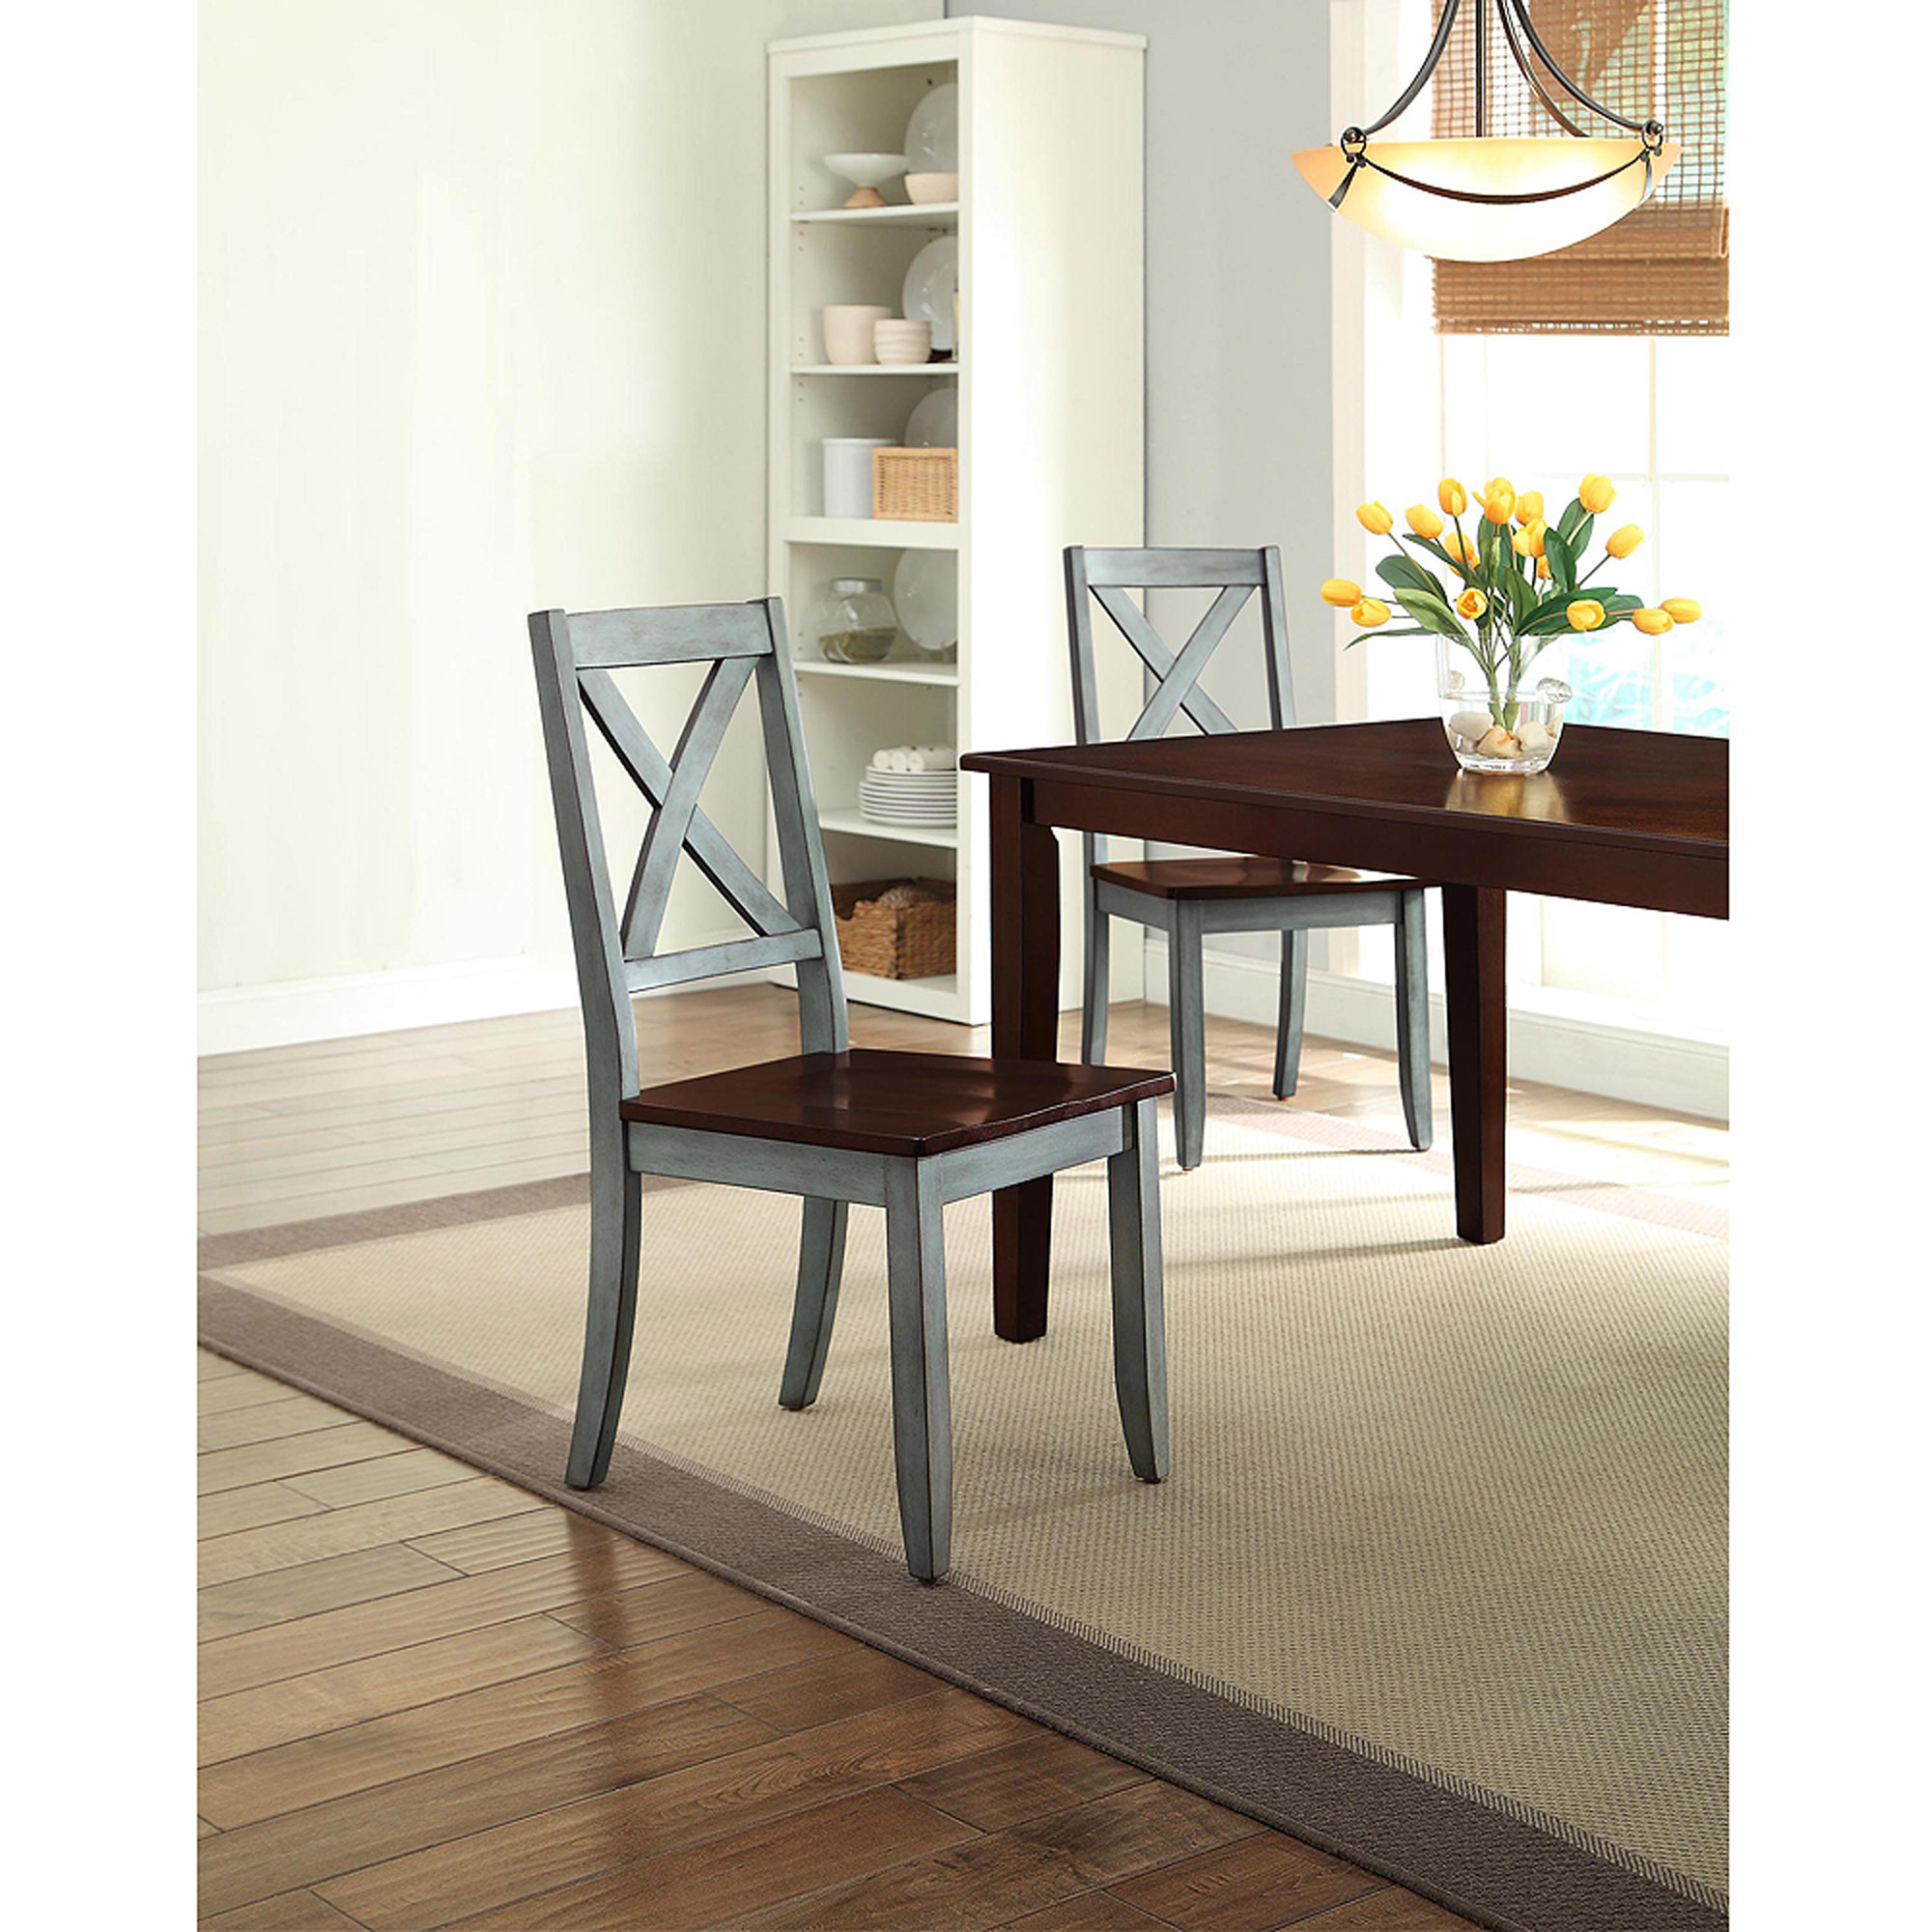 Better Homes and Gardens Maddox Crossing Dining Chair, Blue, Set of ...